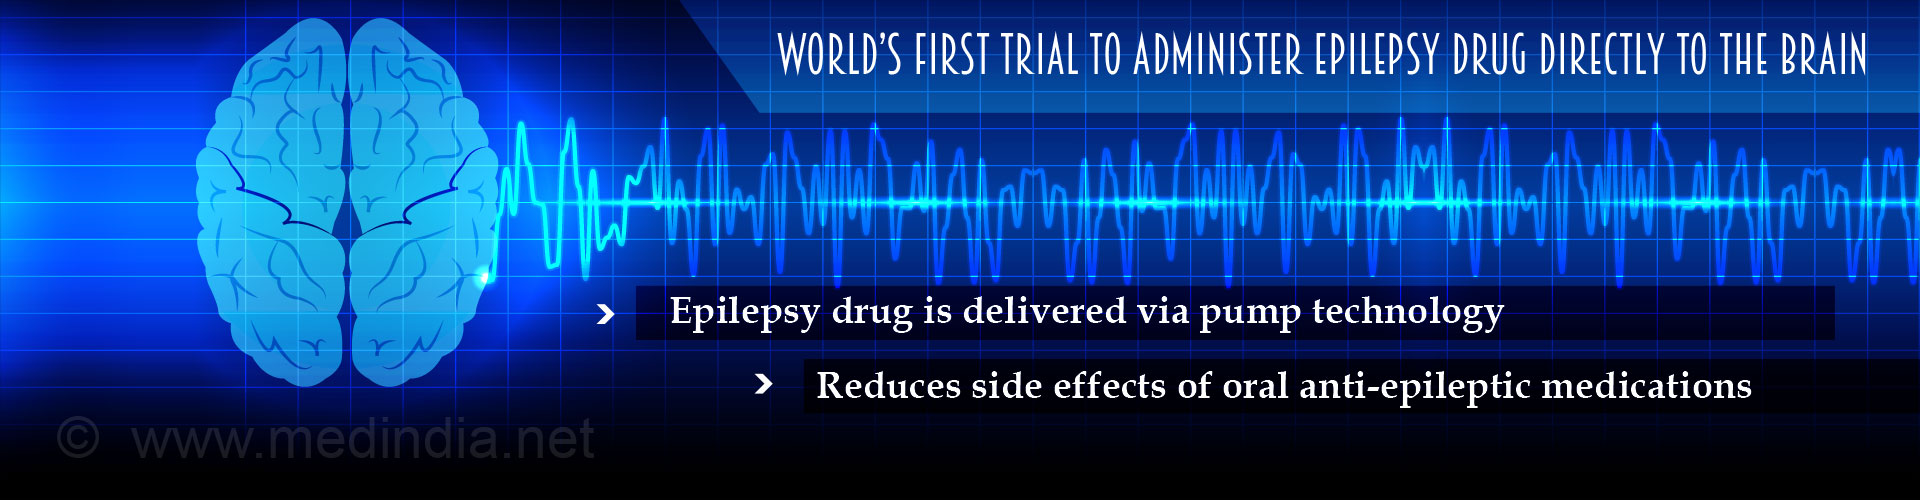 World's First Epilepsy Treatment Delivers Drug Directly to the Brain